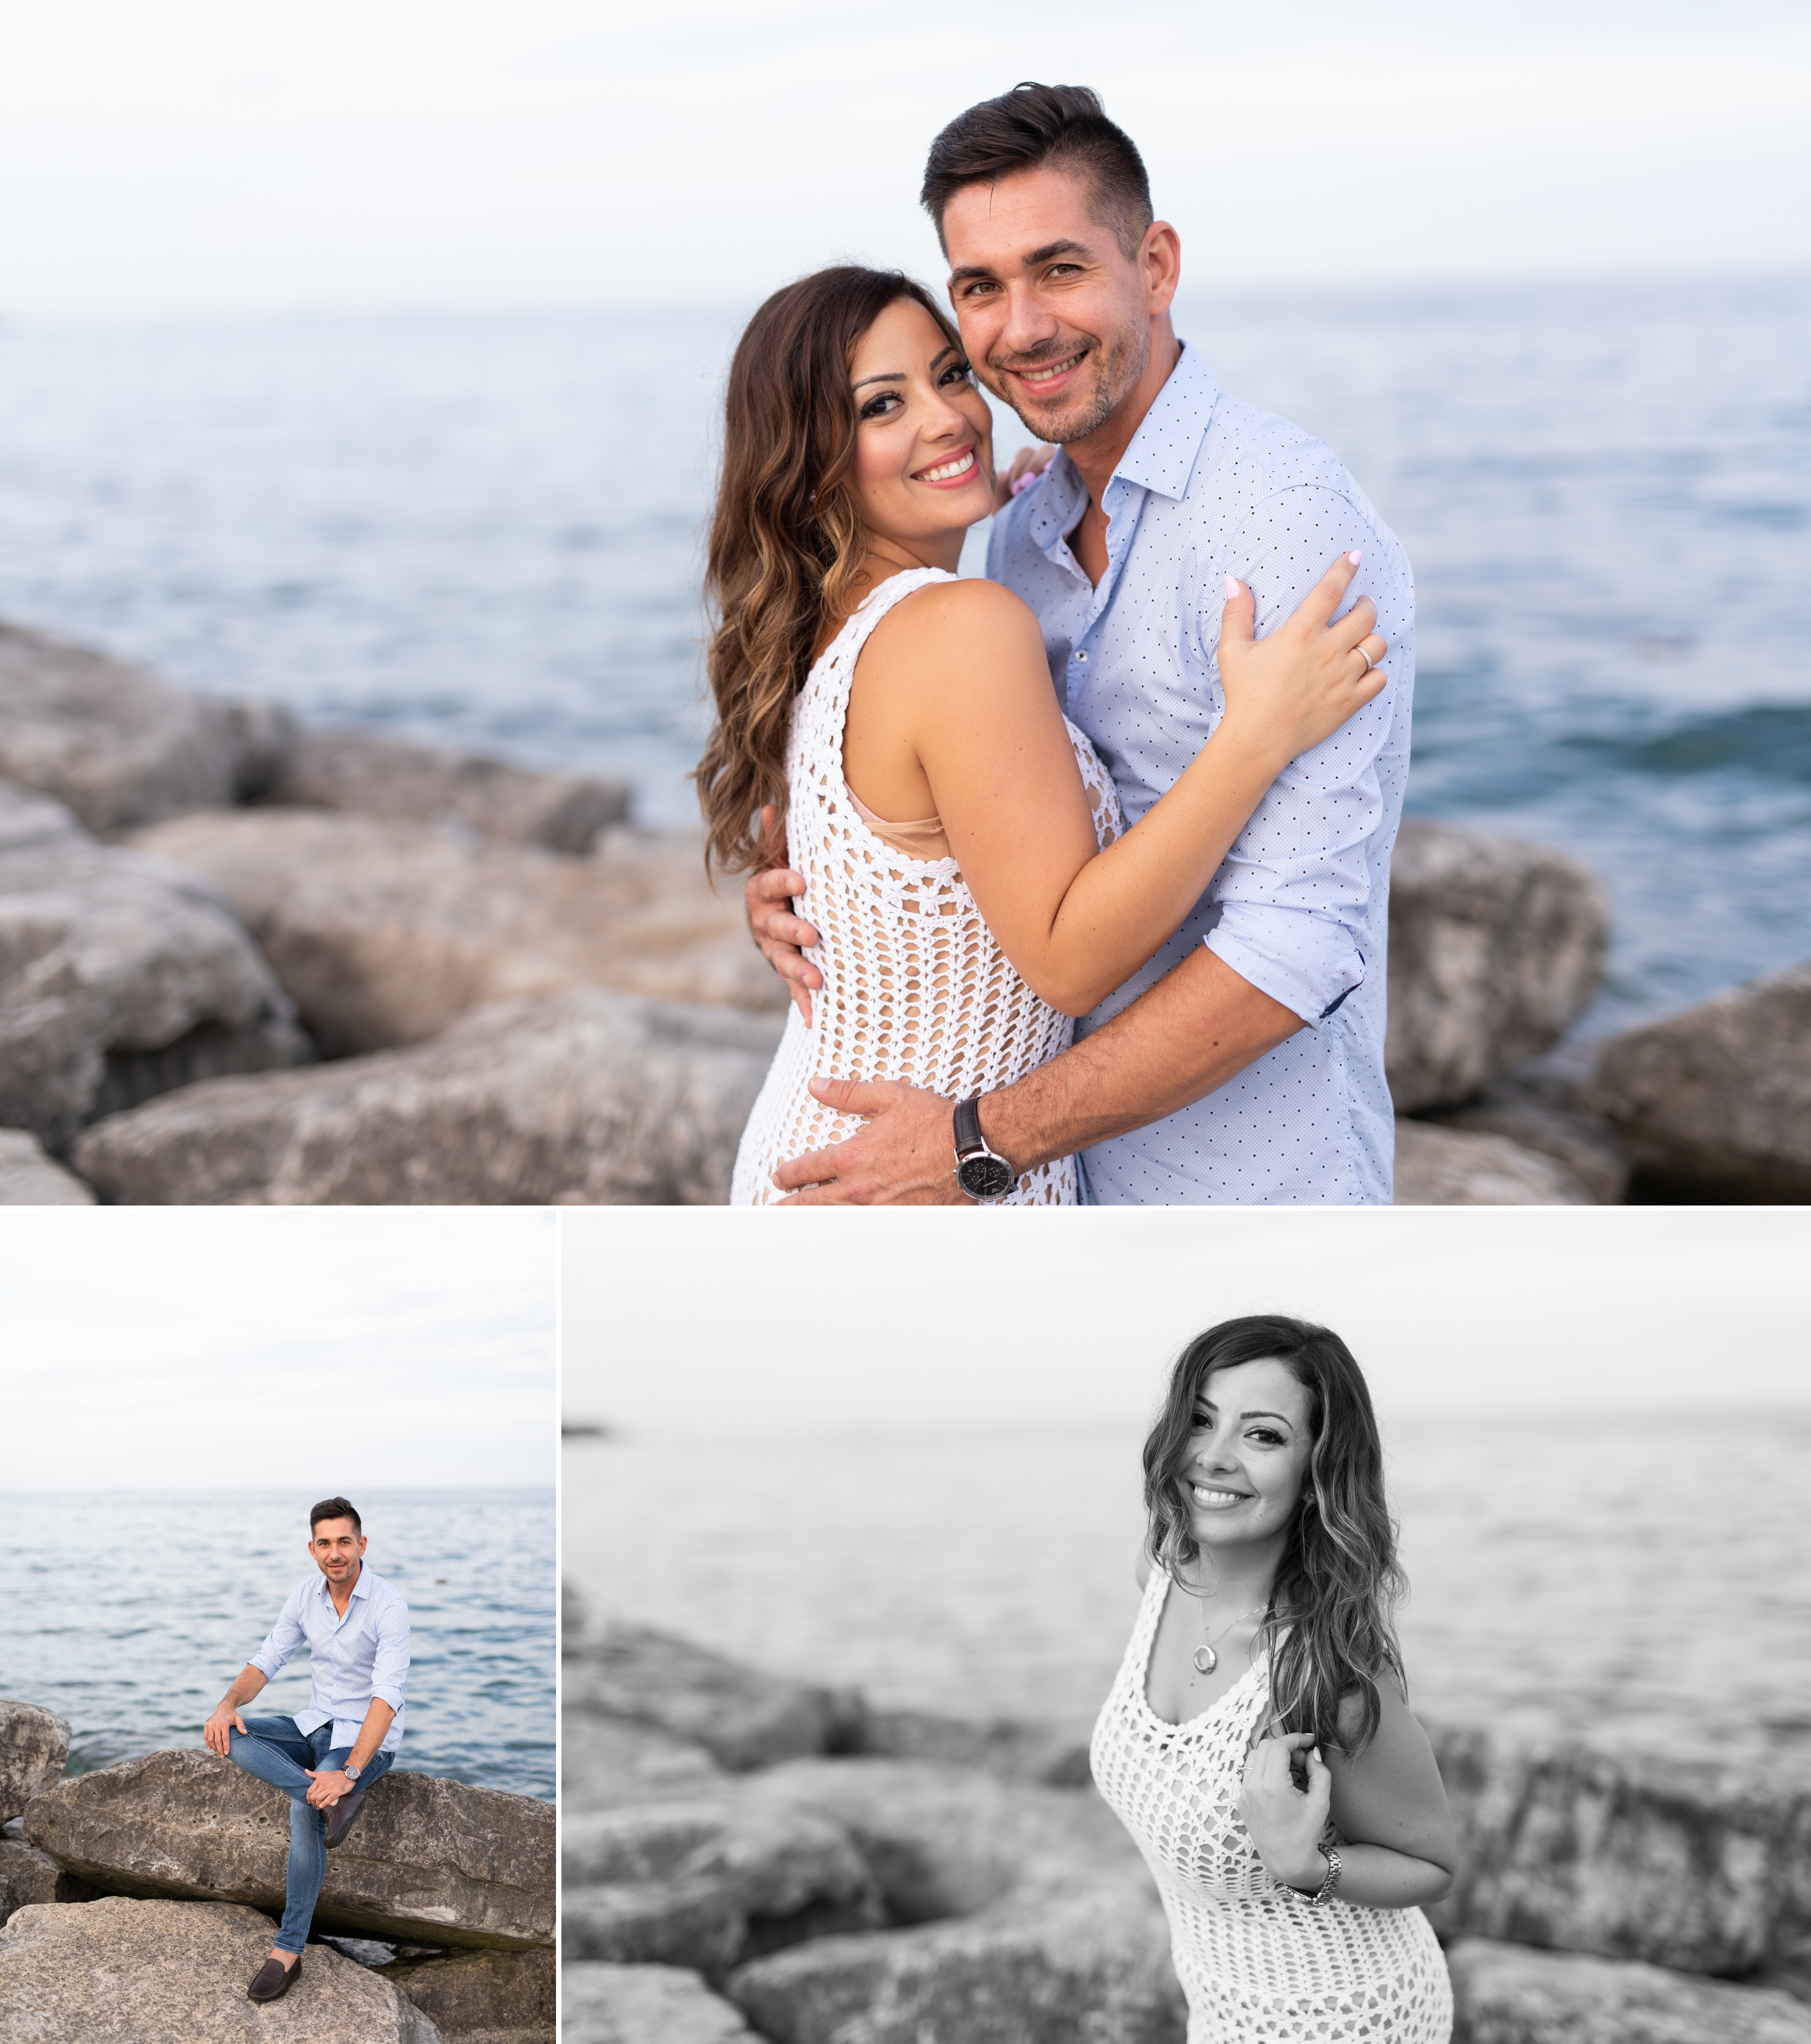 Bride Groom Emoke and Erno Engagement Oakville Pier Zsuzsi Pal Photography